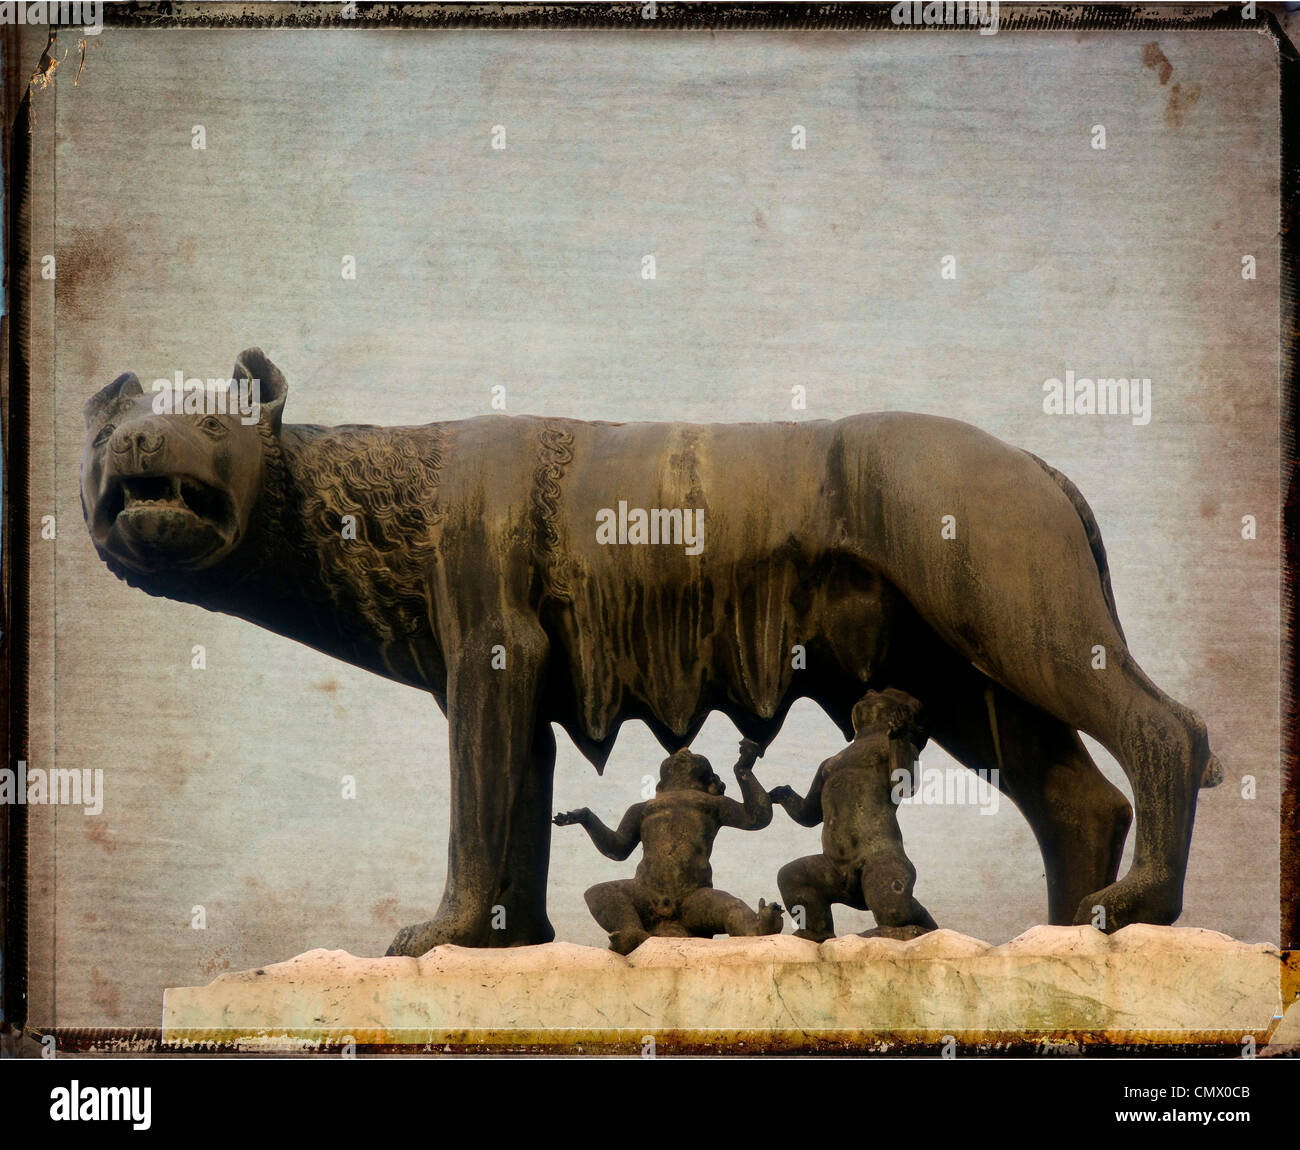 Sculpture of the she-wolf with Romulus and Remus, vintage look art image - Stock Image